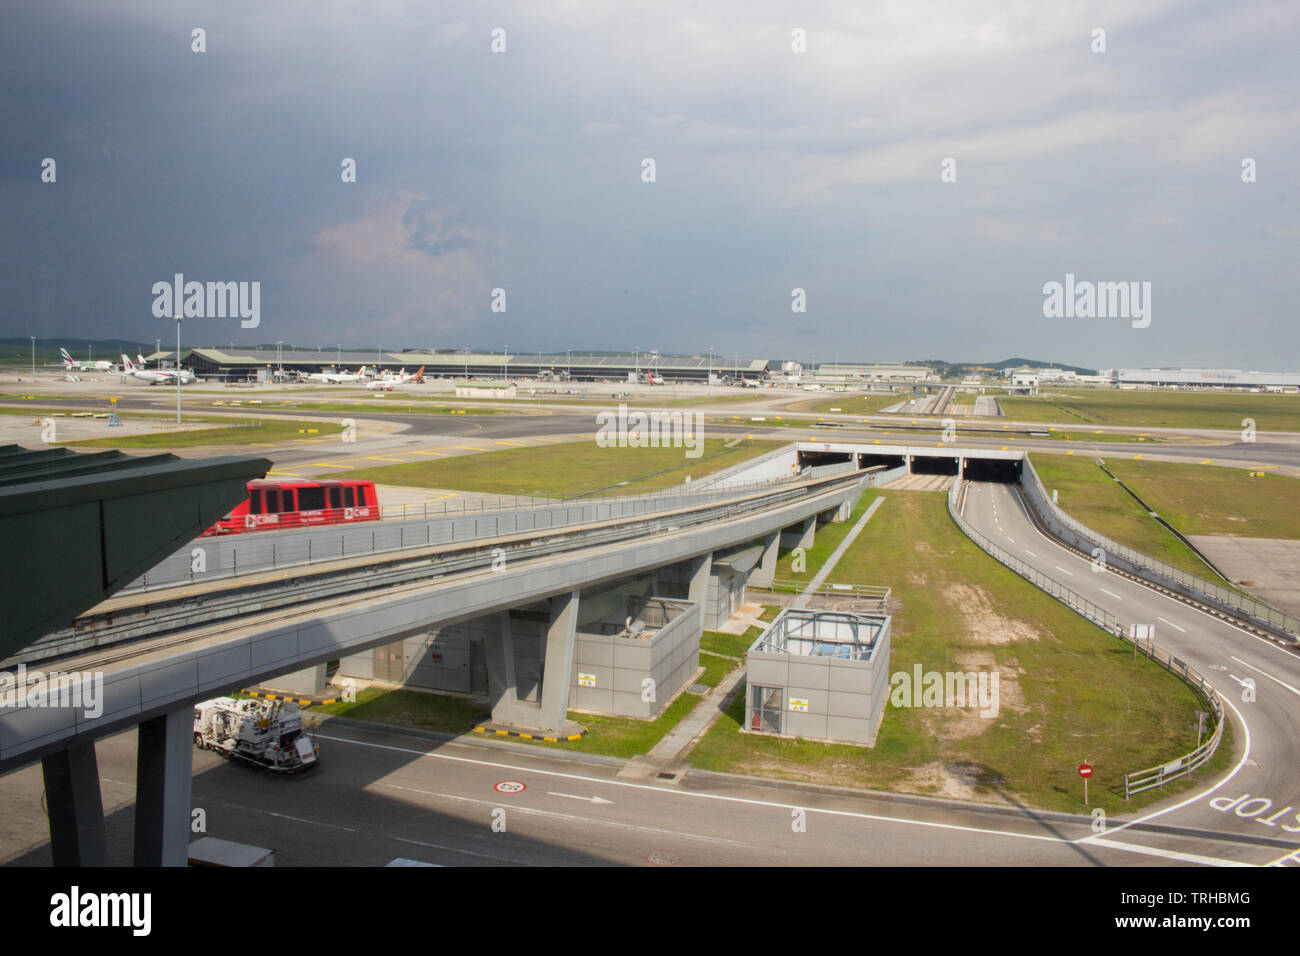 Airport rail link service between KL Sentral and the KLIA station in Malaysia Airport and CIMB train. - Stock Image